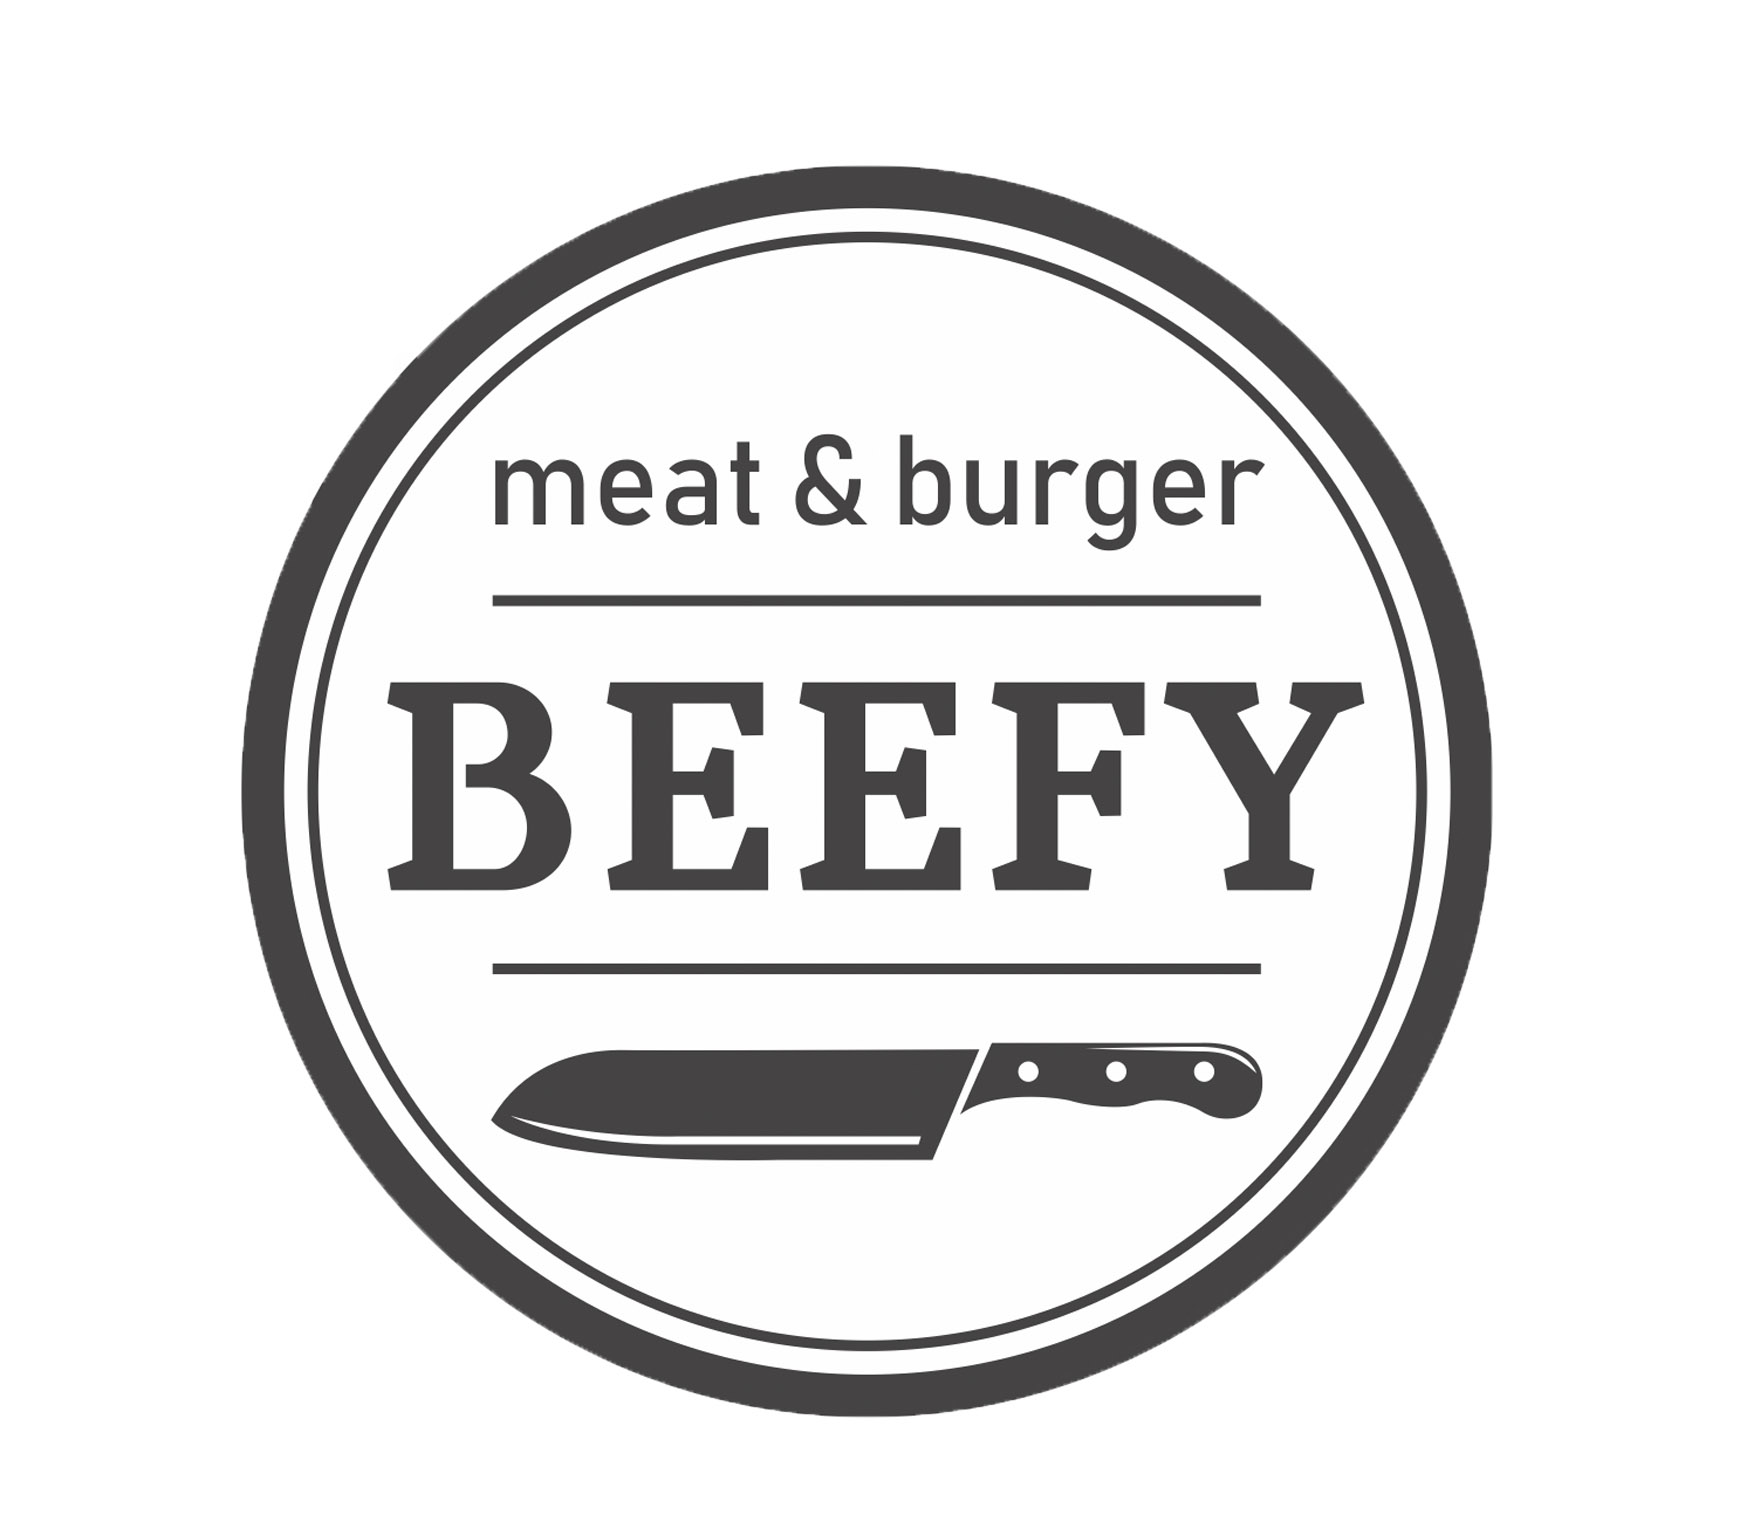 Beefy meat&burger